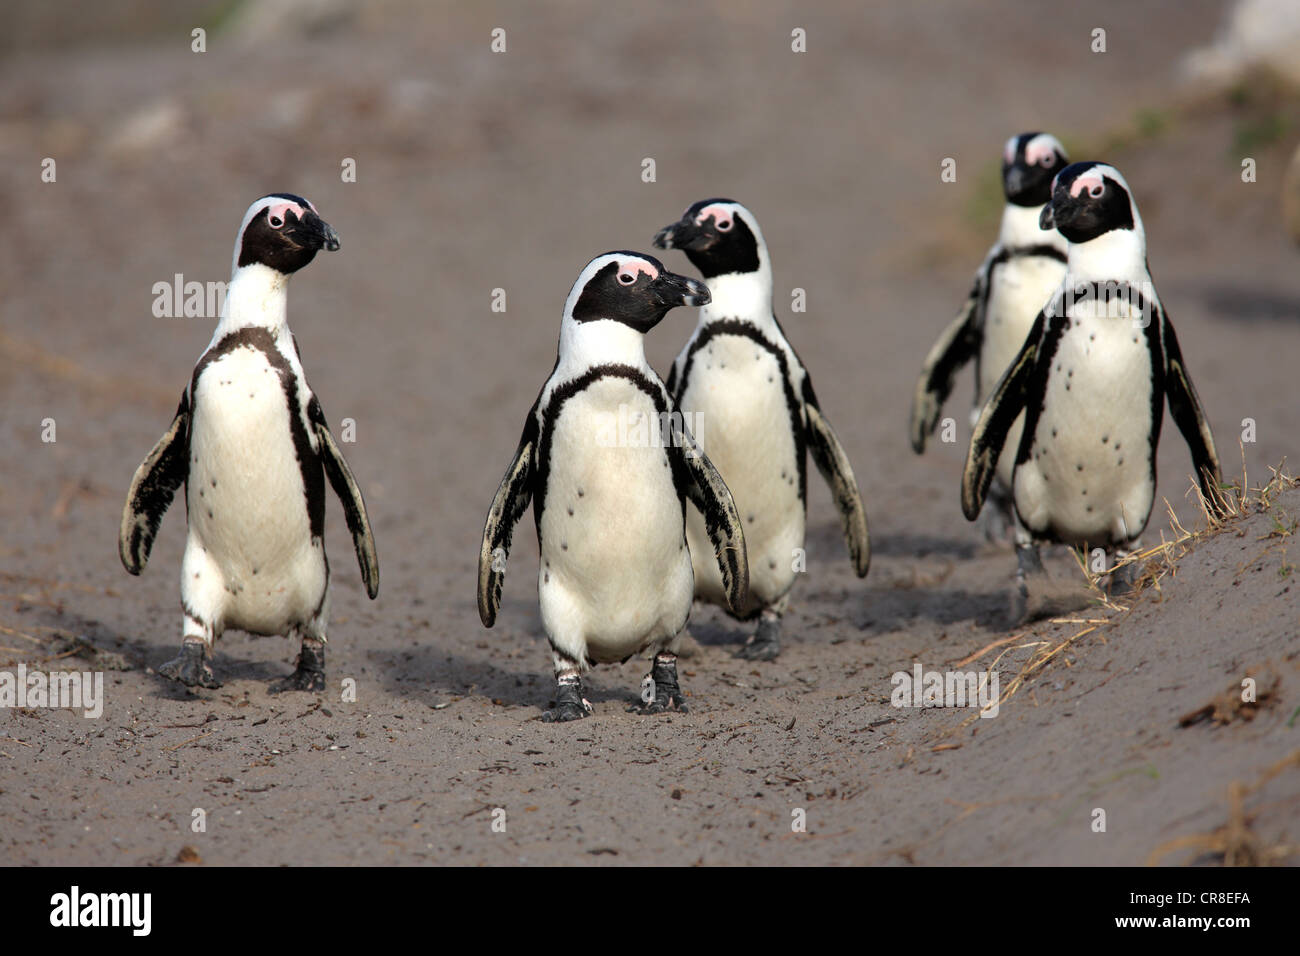 African Penguins, Black-footed Penguin or Jackass Penguin (Spheniscus demersus), group on the beach, Betty's Bay, Stock Photo